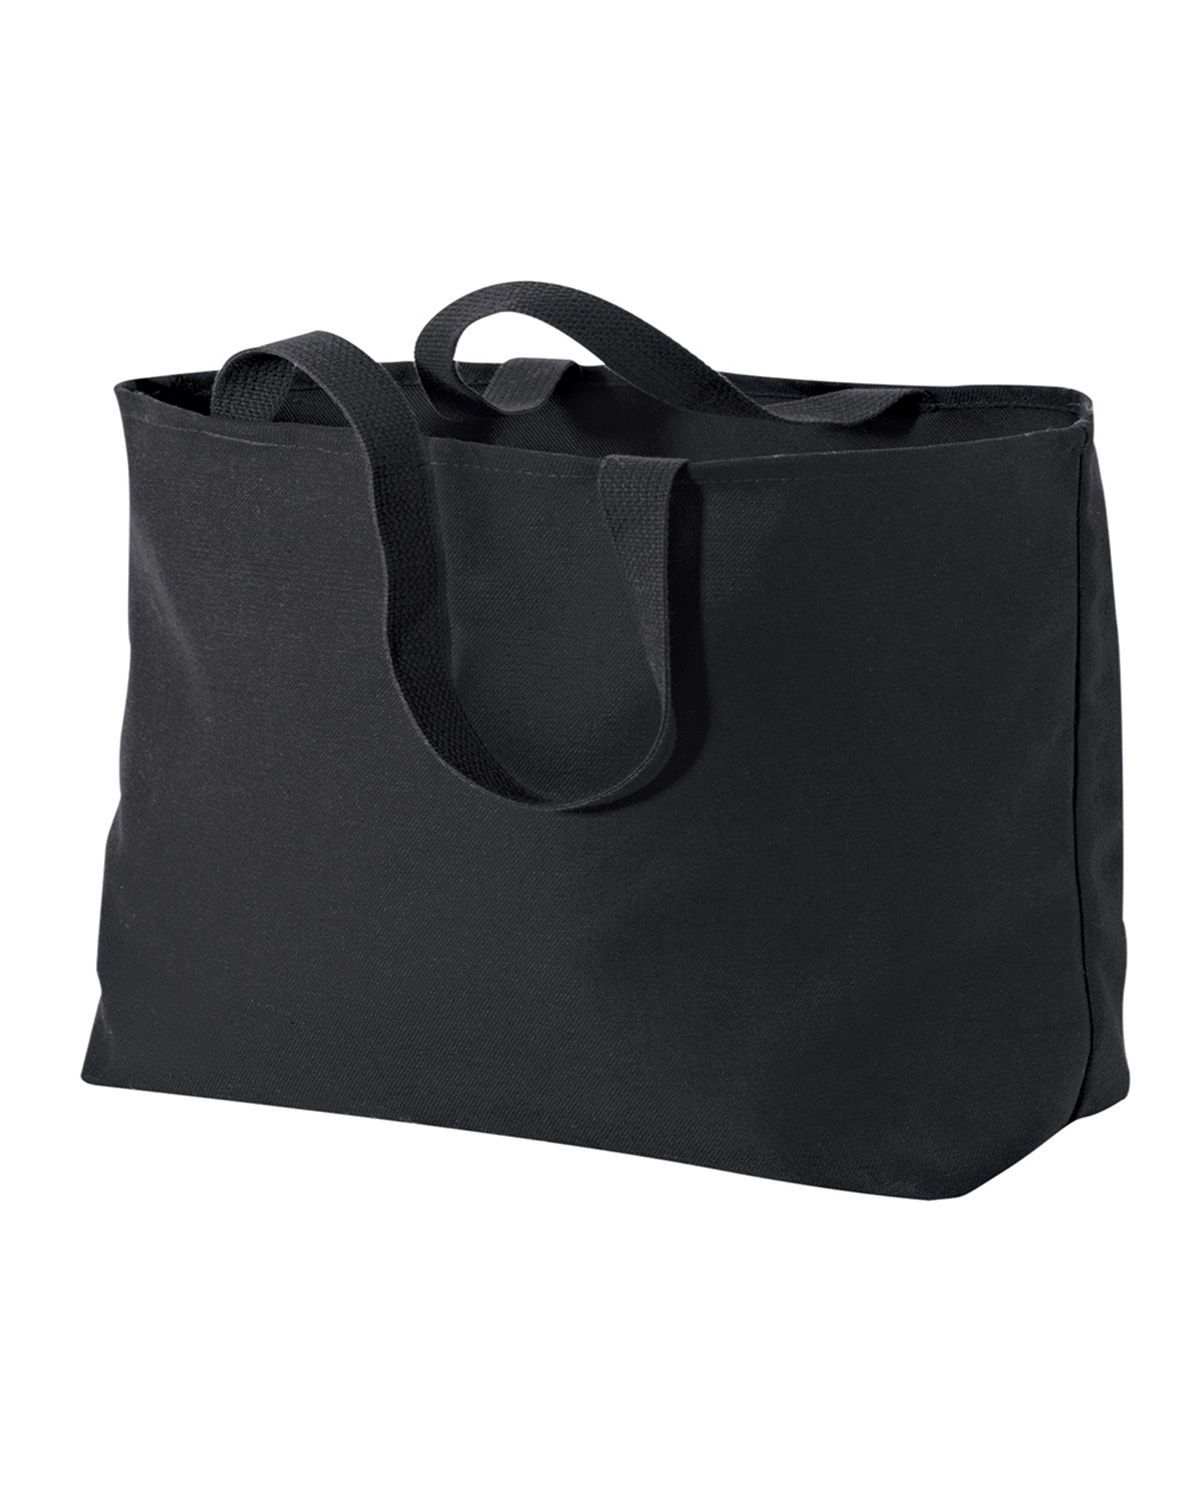 Port Authority B300 Jumbo Tote